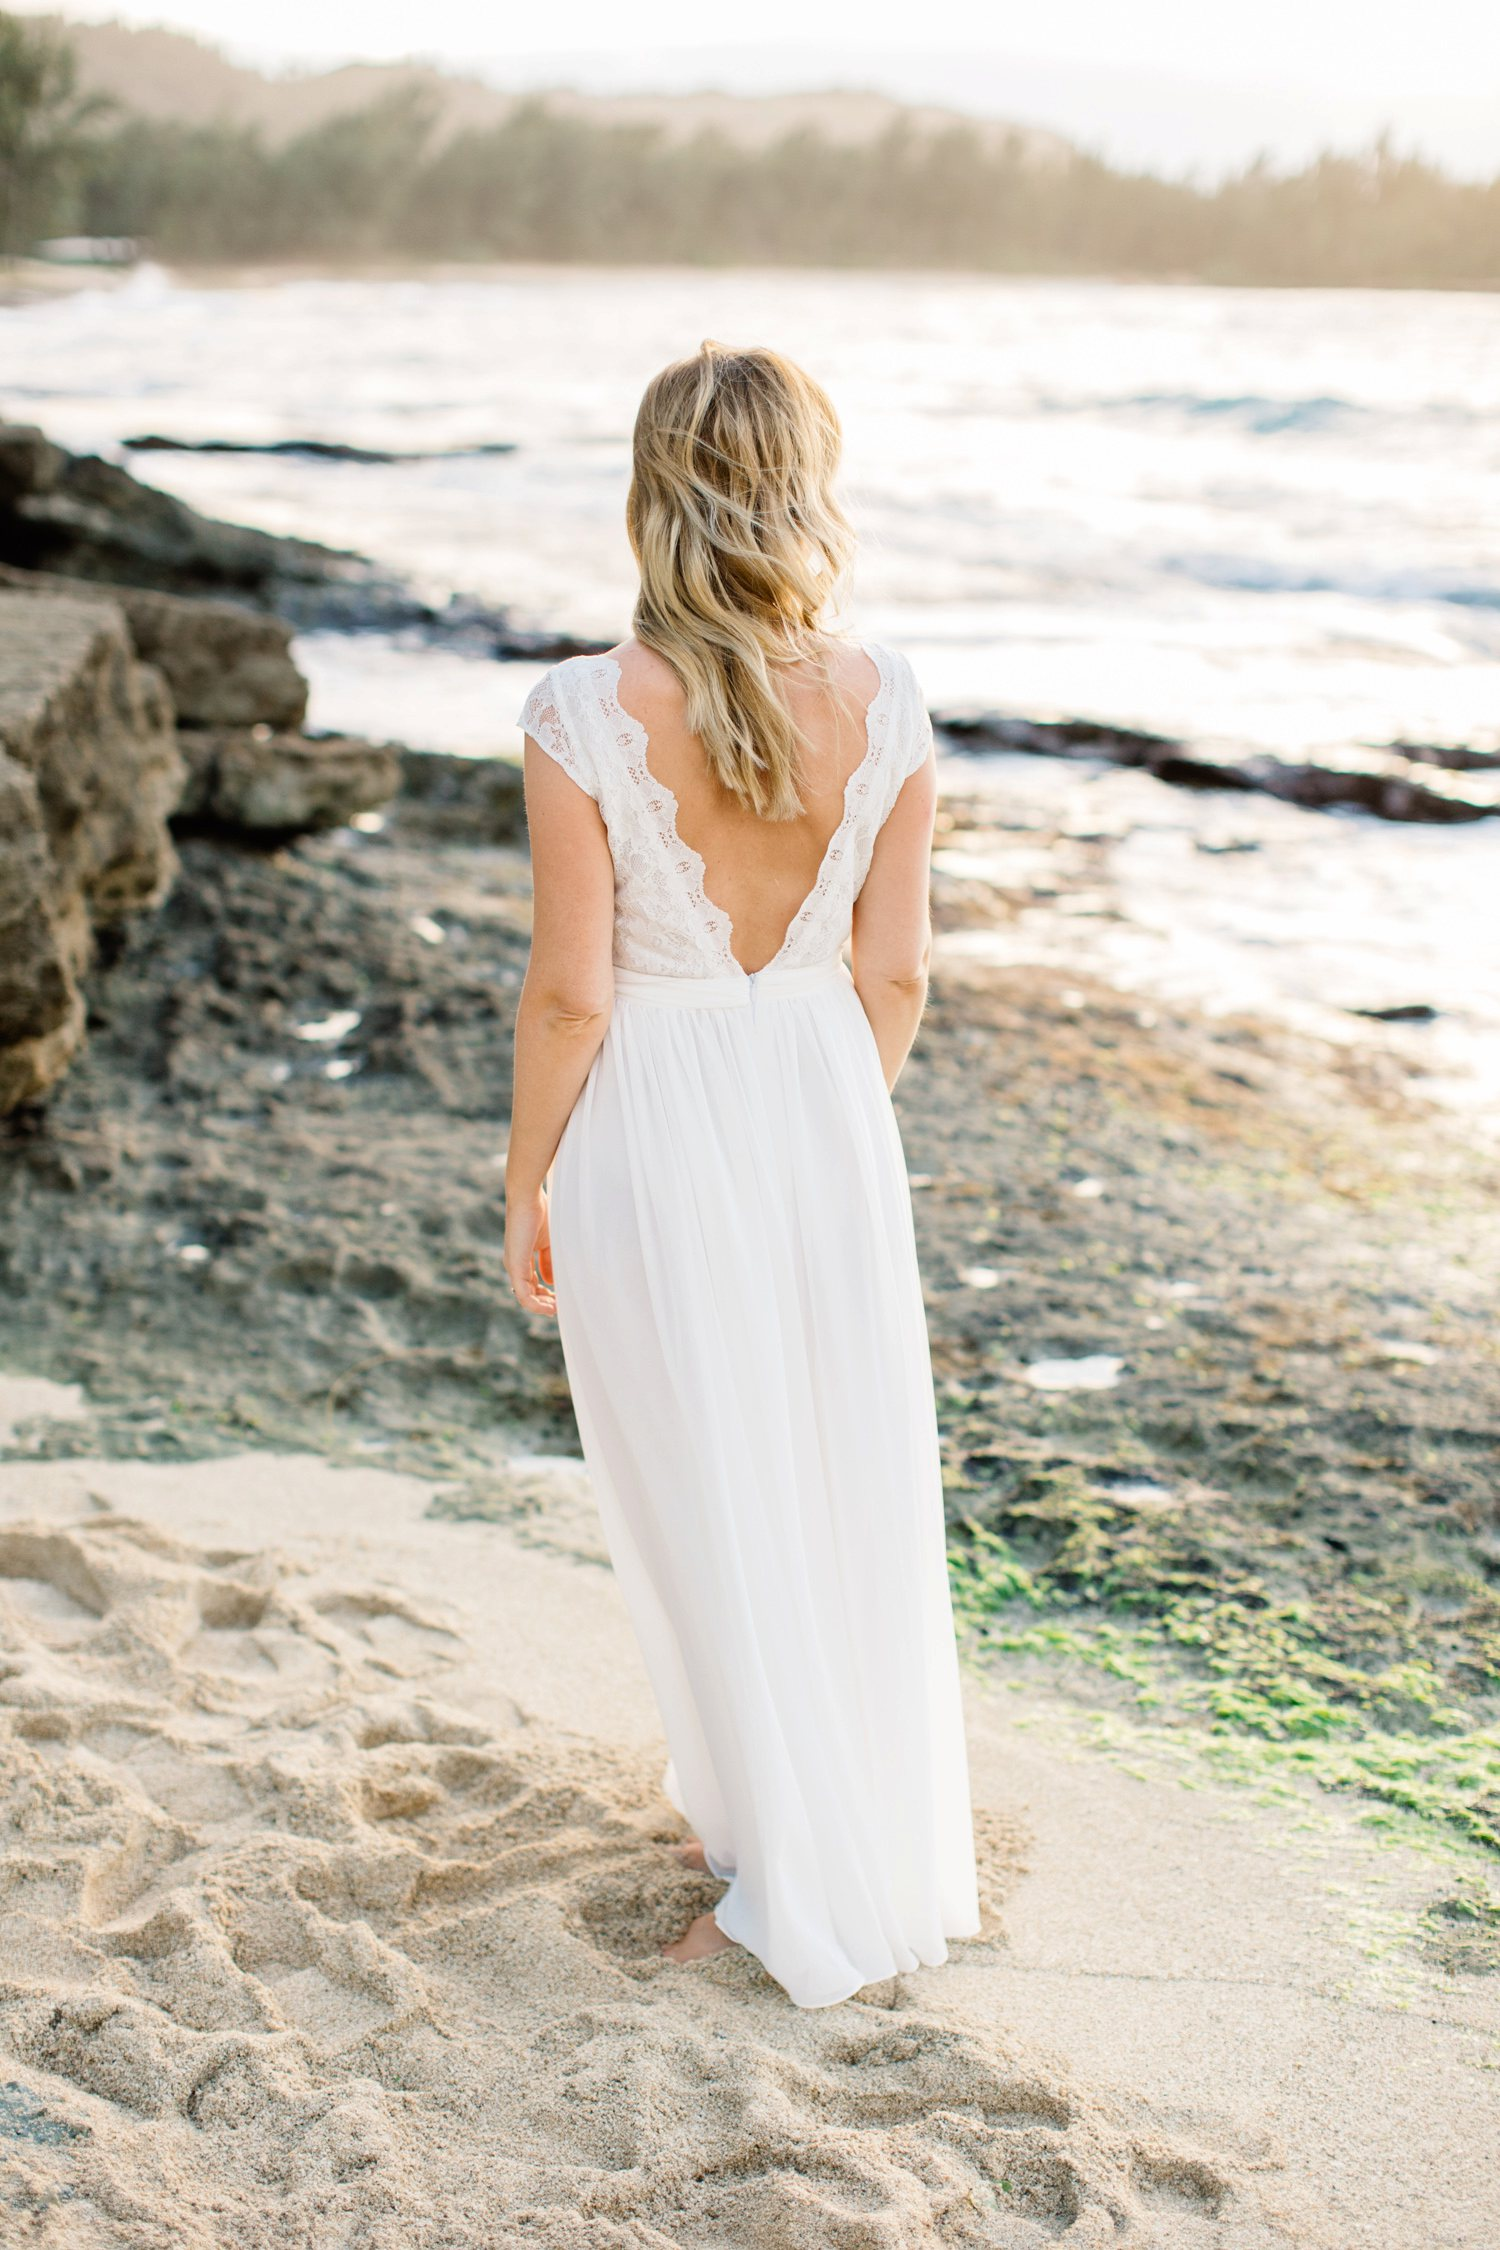 annika-pele-hawaii-elopement-022.jpg